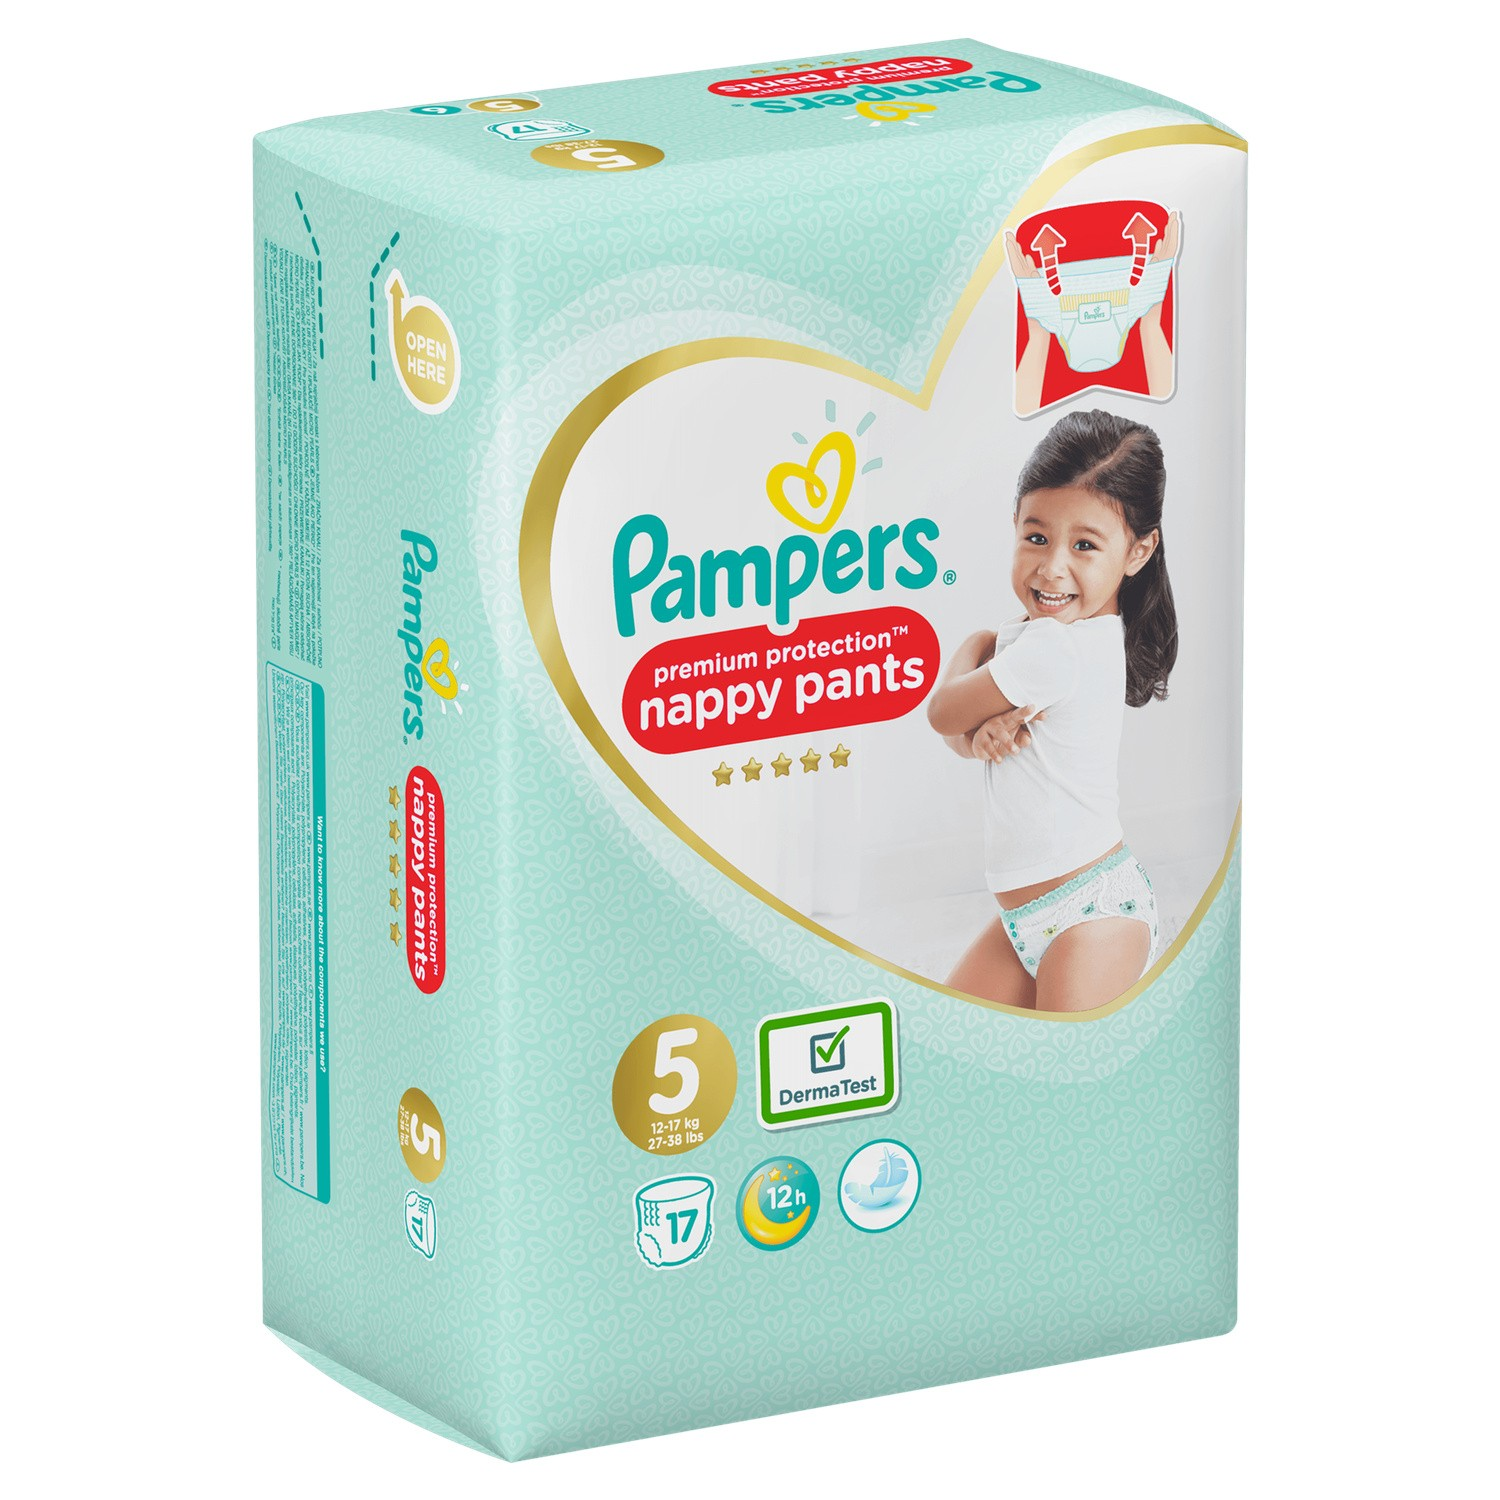 Pampers Acti.fit Pants T5x17